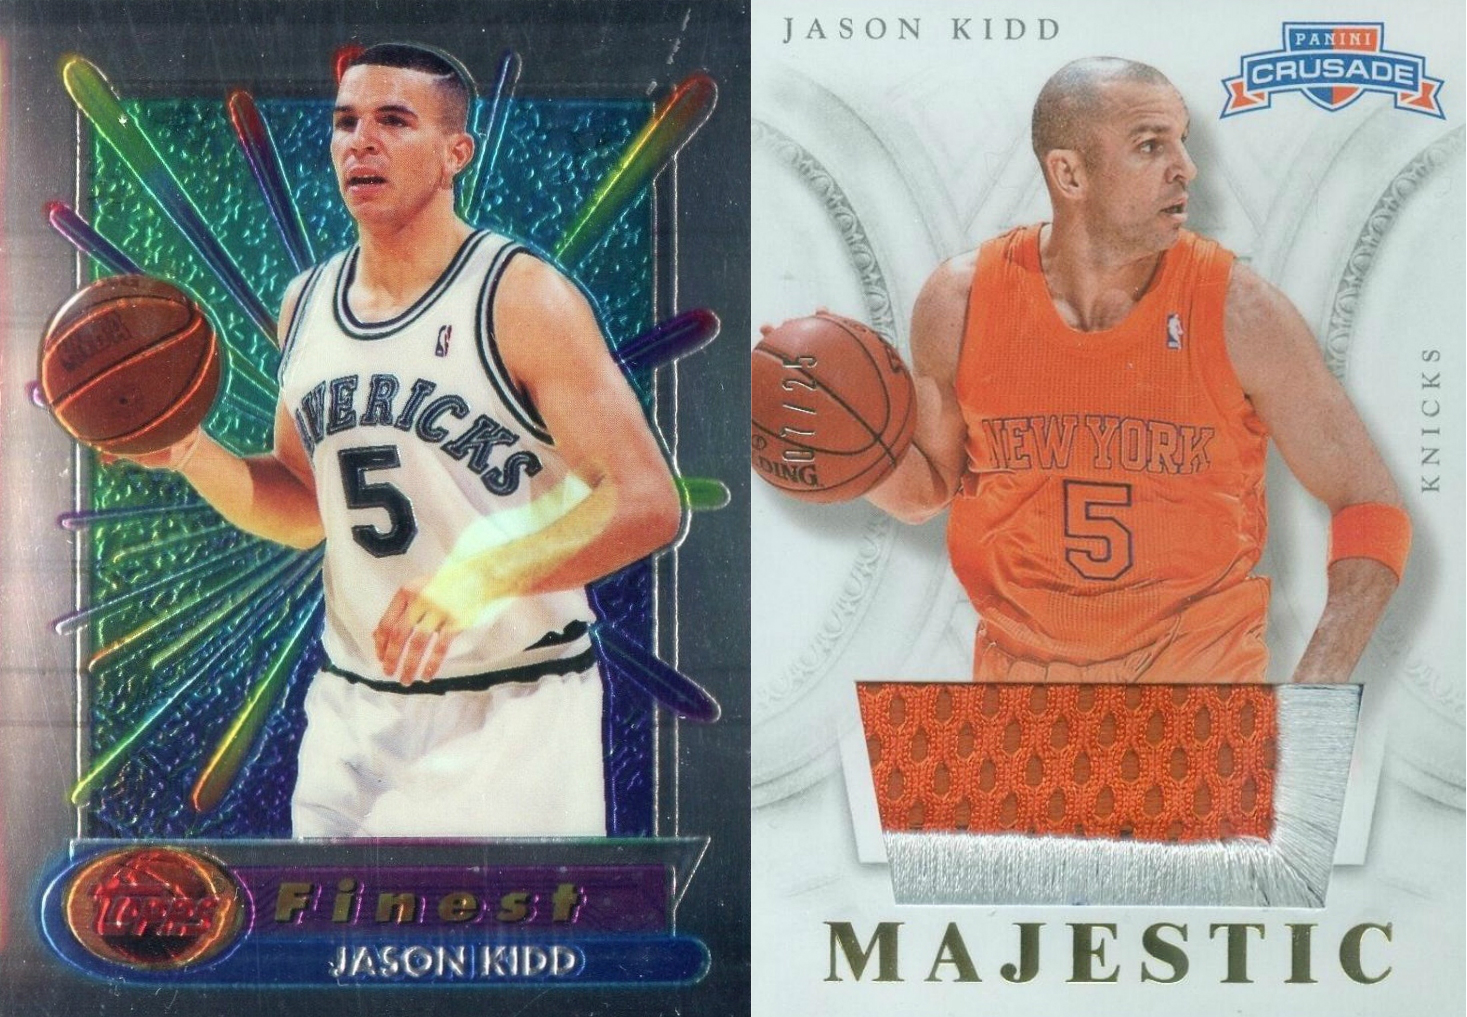 jasonkidd_final